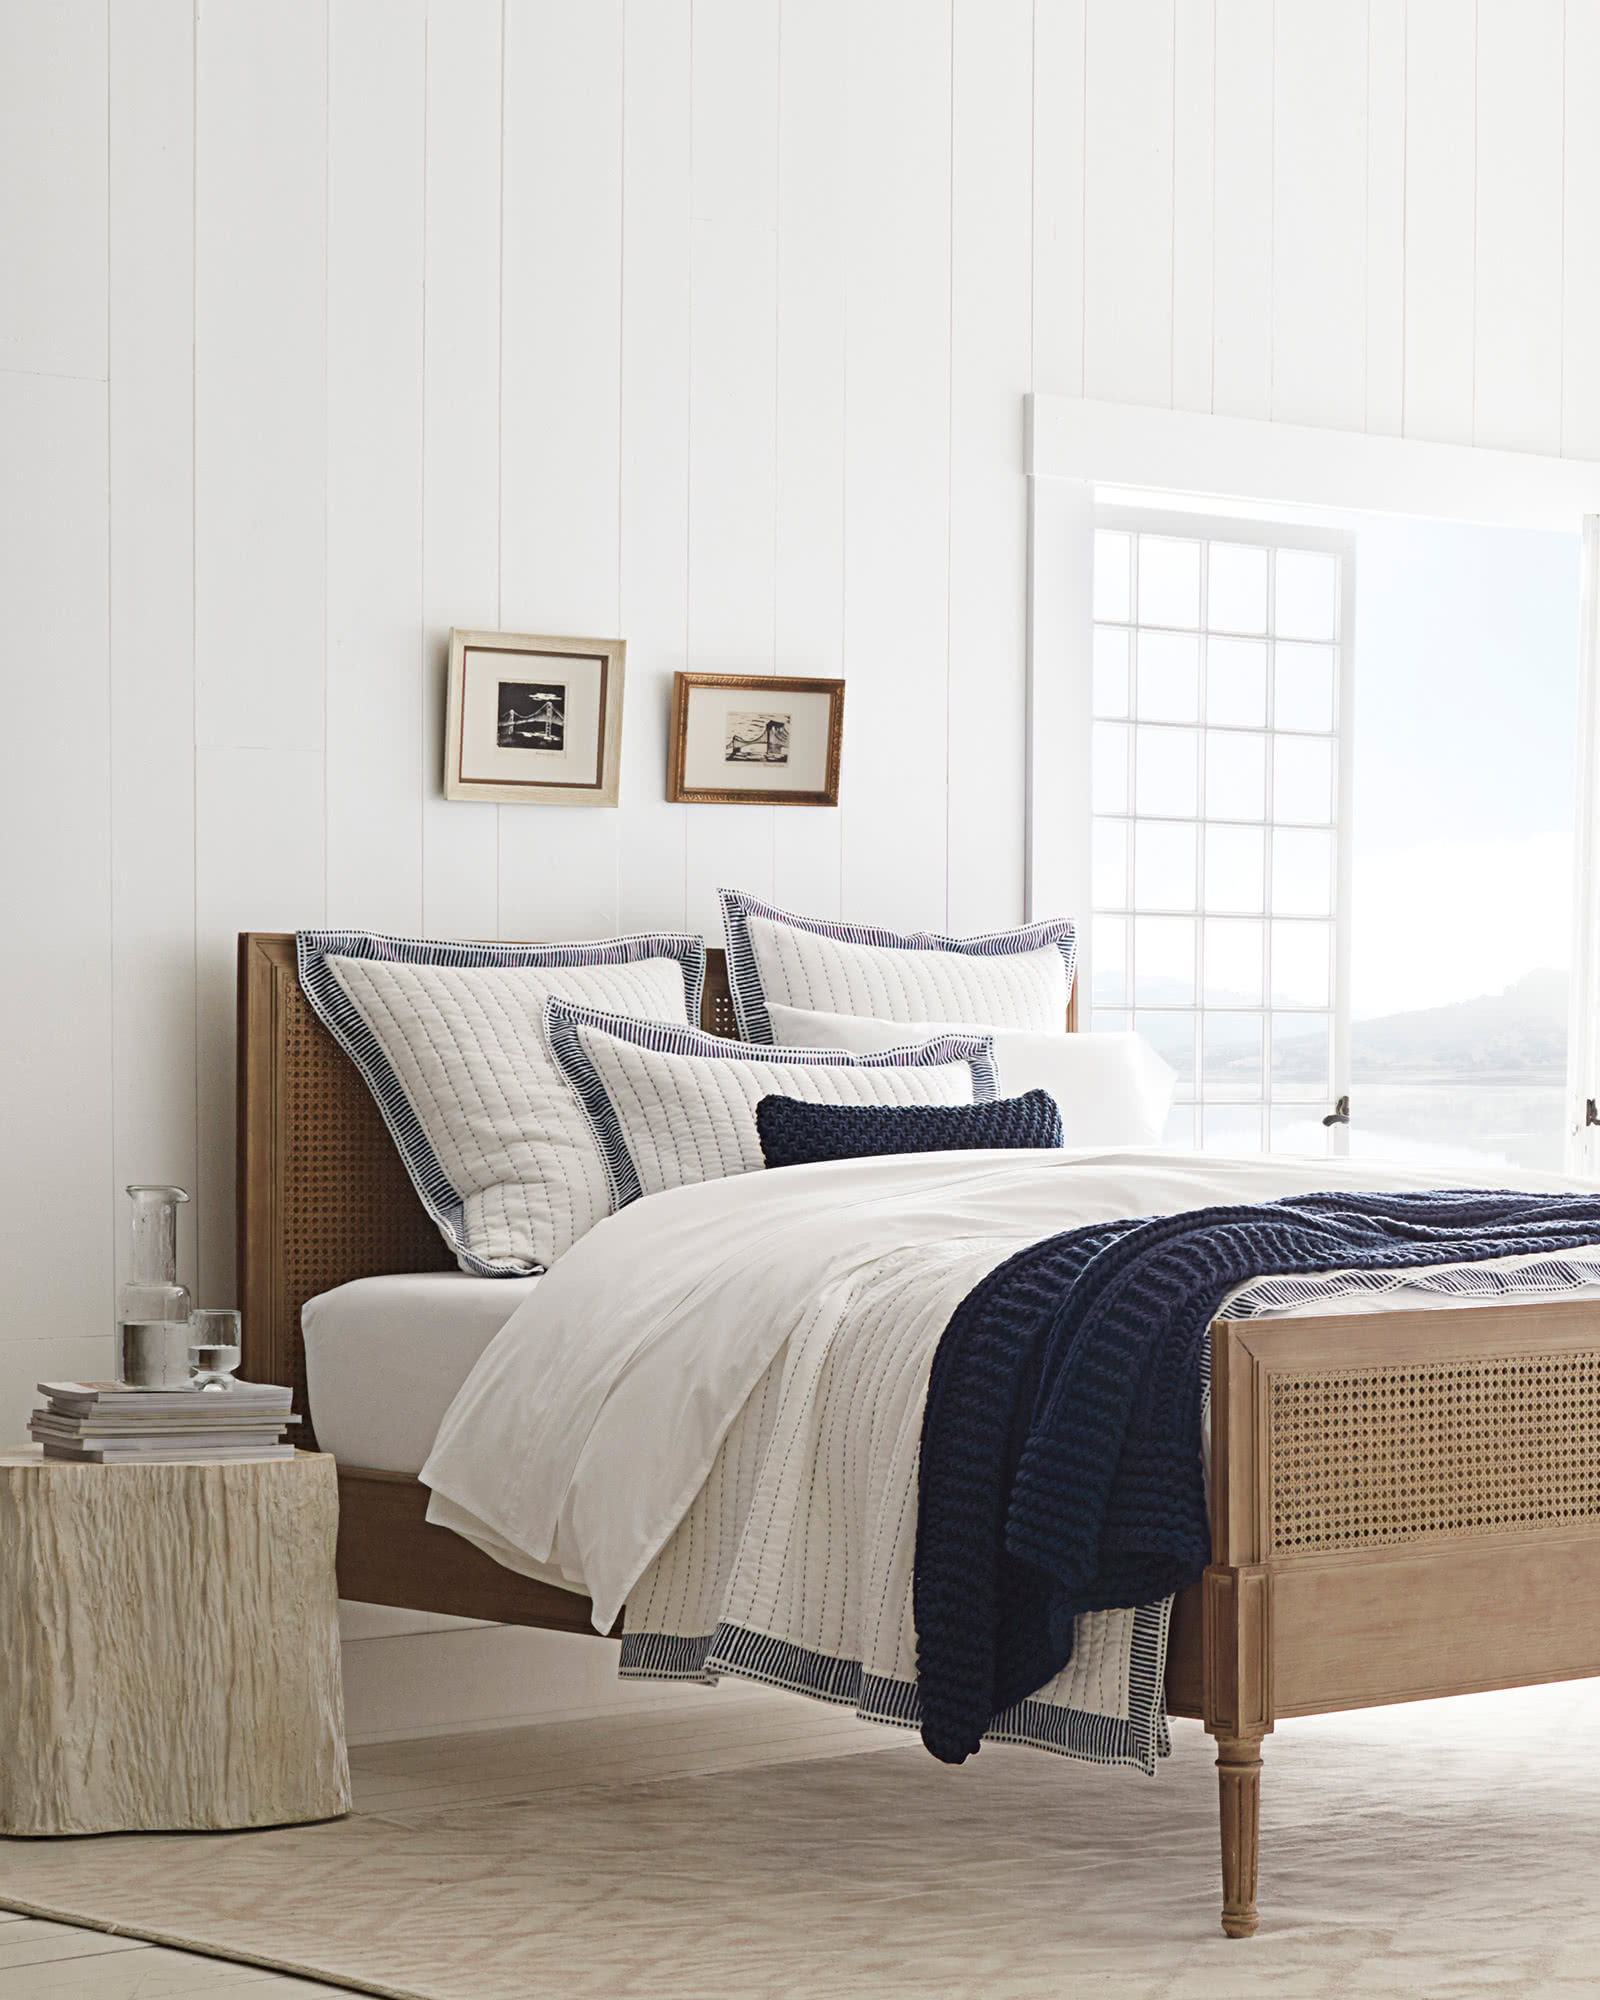 Harbour Cane Bed - Beds & Headboards